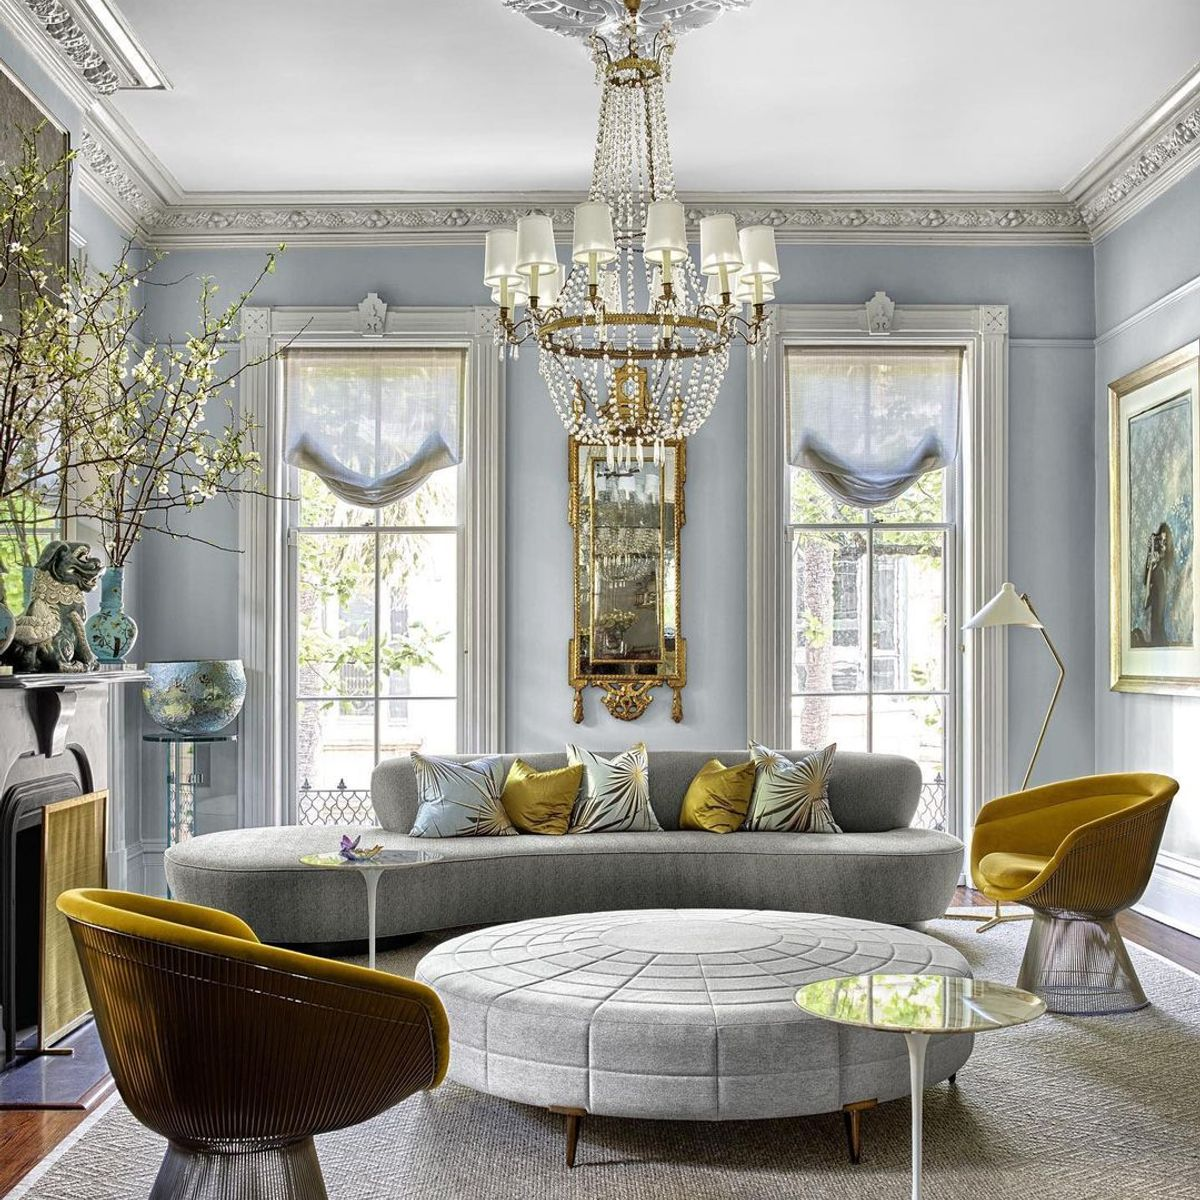 20 of Todays Astounding  Design Inspo for Girls Whove Outgrown  Their Current Decor  ...